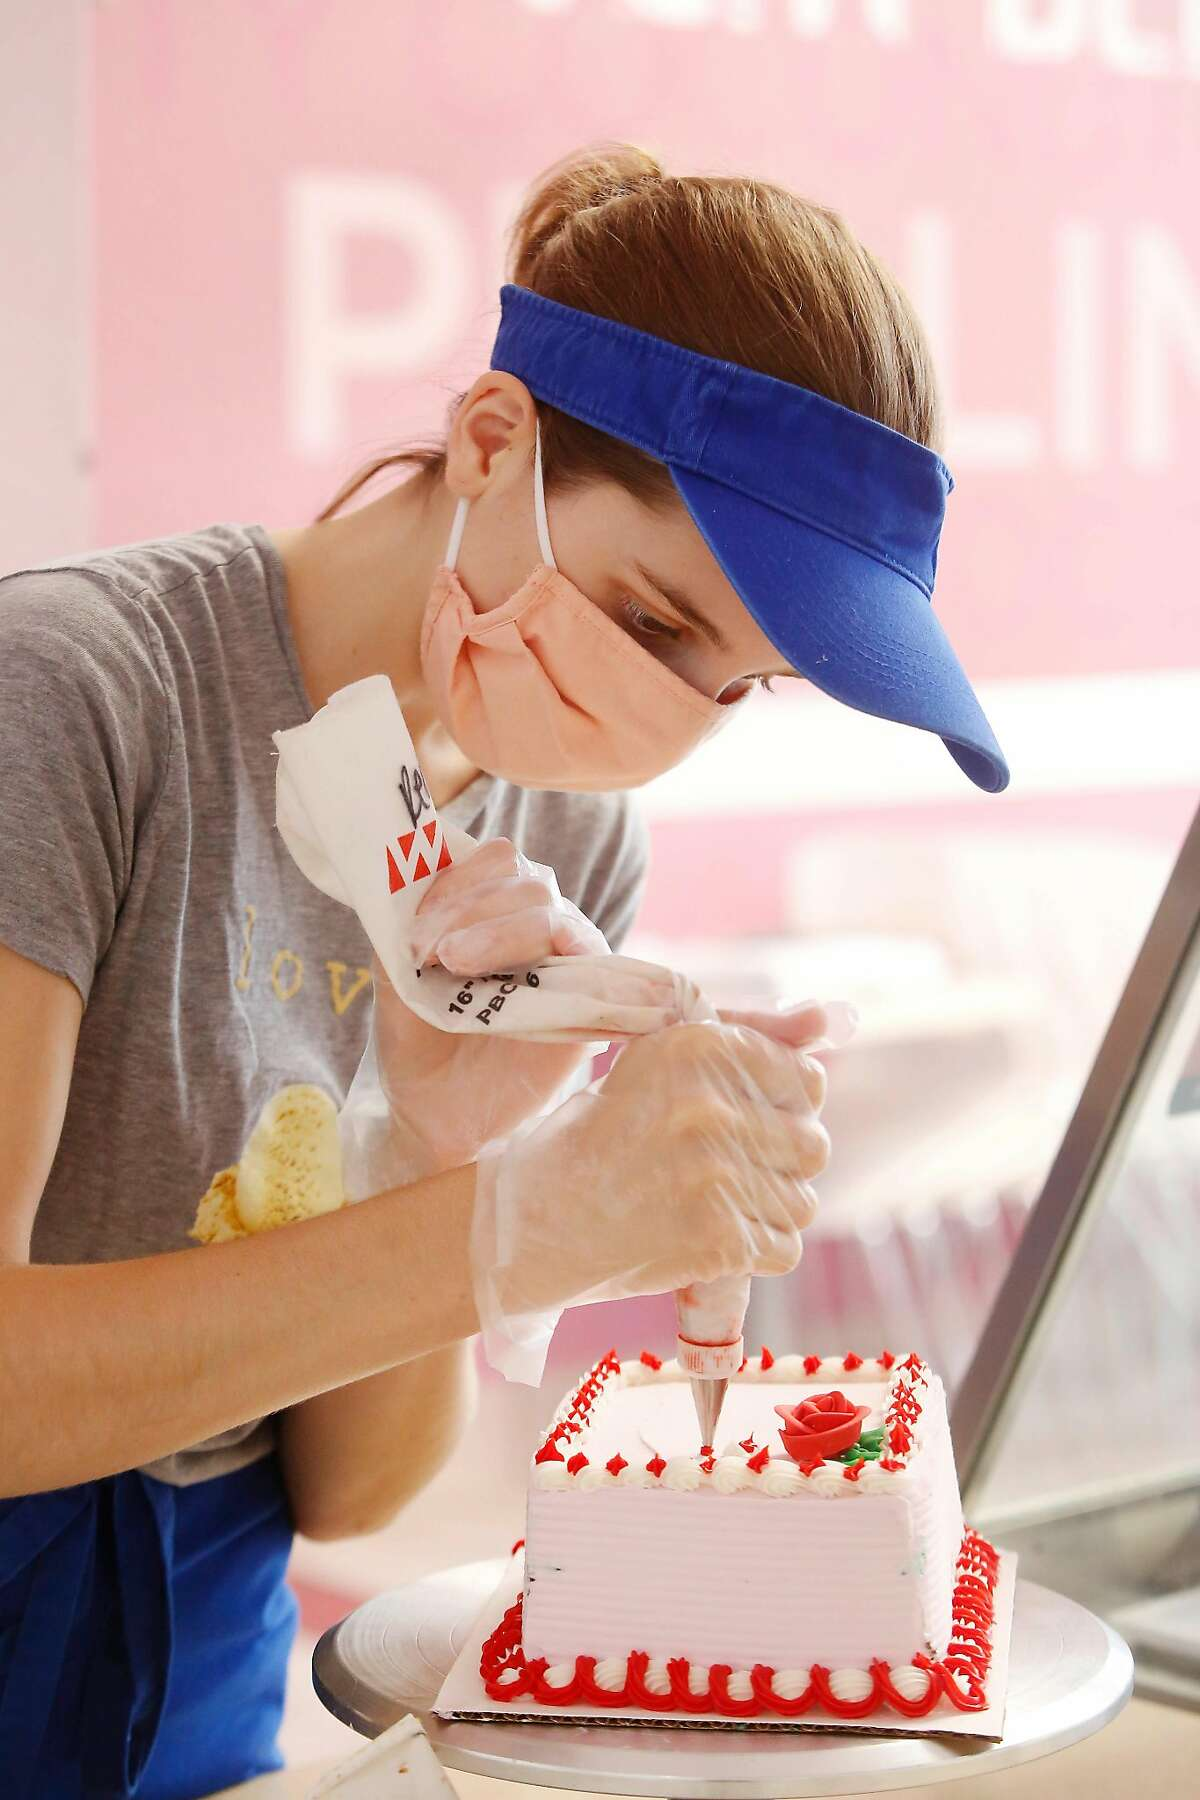 Abby Hasselbrink decorates a cake as she works at Baskin-Robbins on Monday, July 20, 2020 in San Ramon, Calif. Abby Hasselbrink is a Holy Names-Oakland gradudate who works at Baskins-Robbins. She plans to work there the rest of the year then travel thru Pacific Discovery gap-year program next spring before starting at Denison University in Ohio in fall '21.